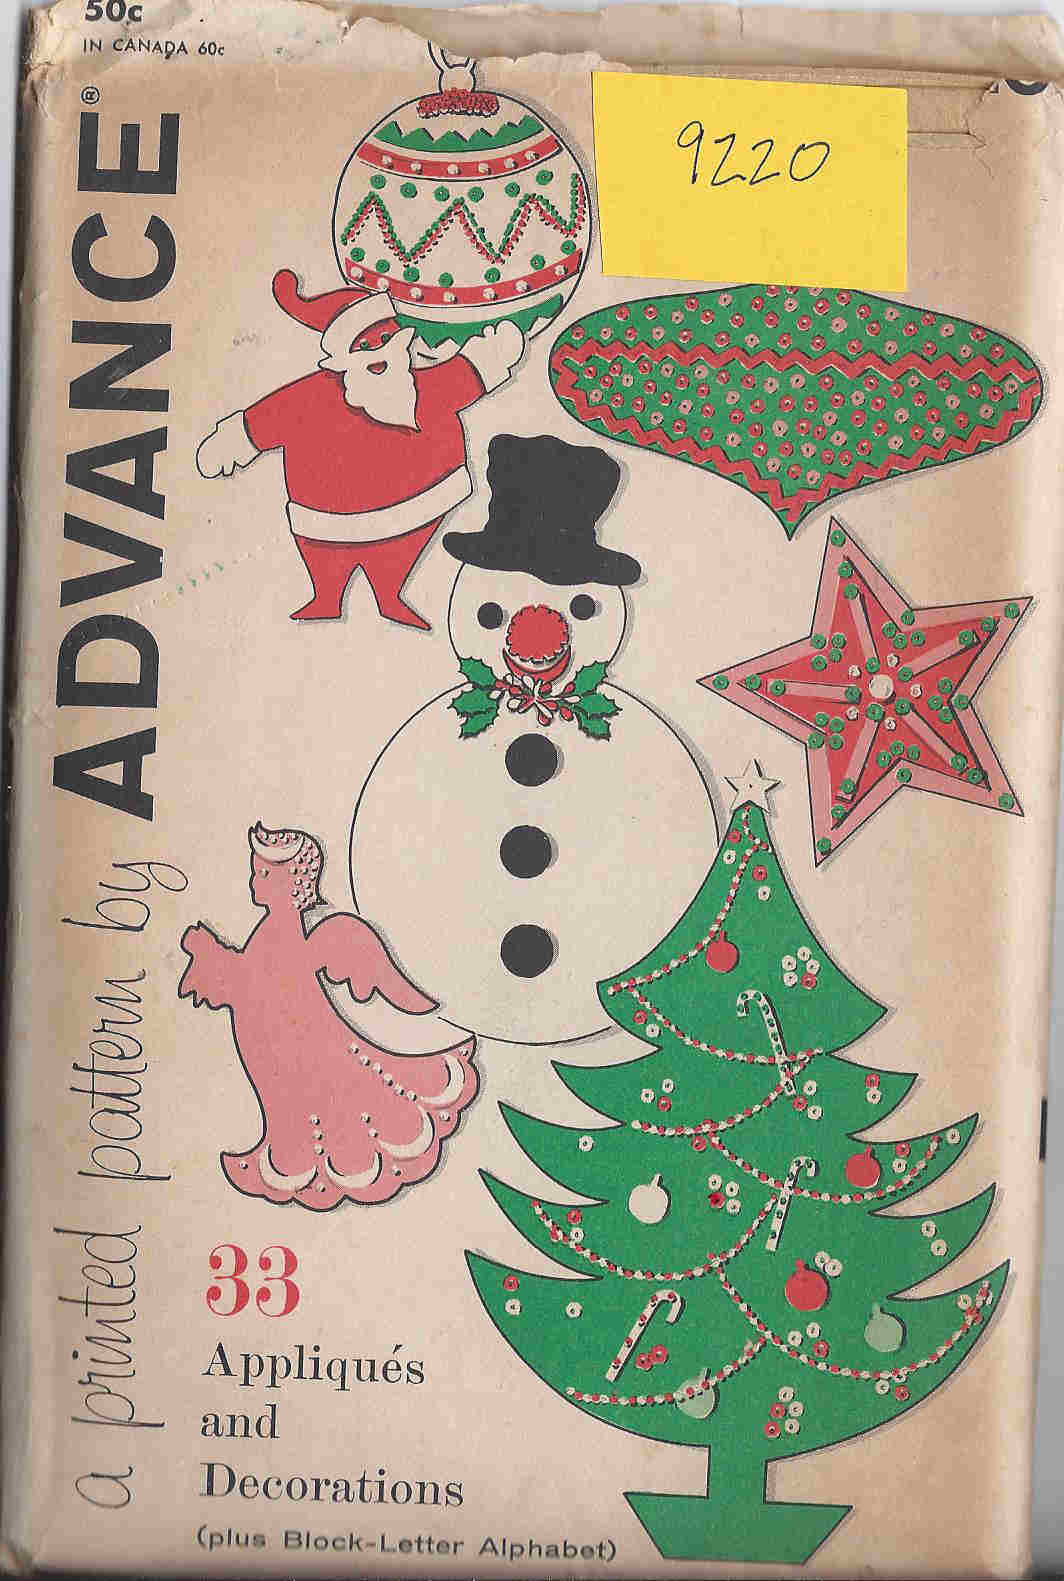 1960s Advance Appliques and Decorations